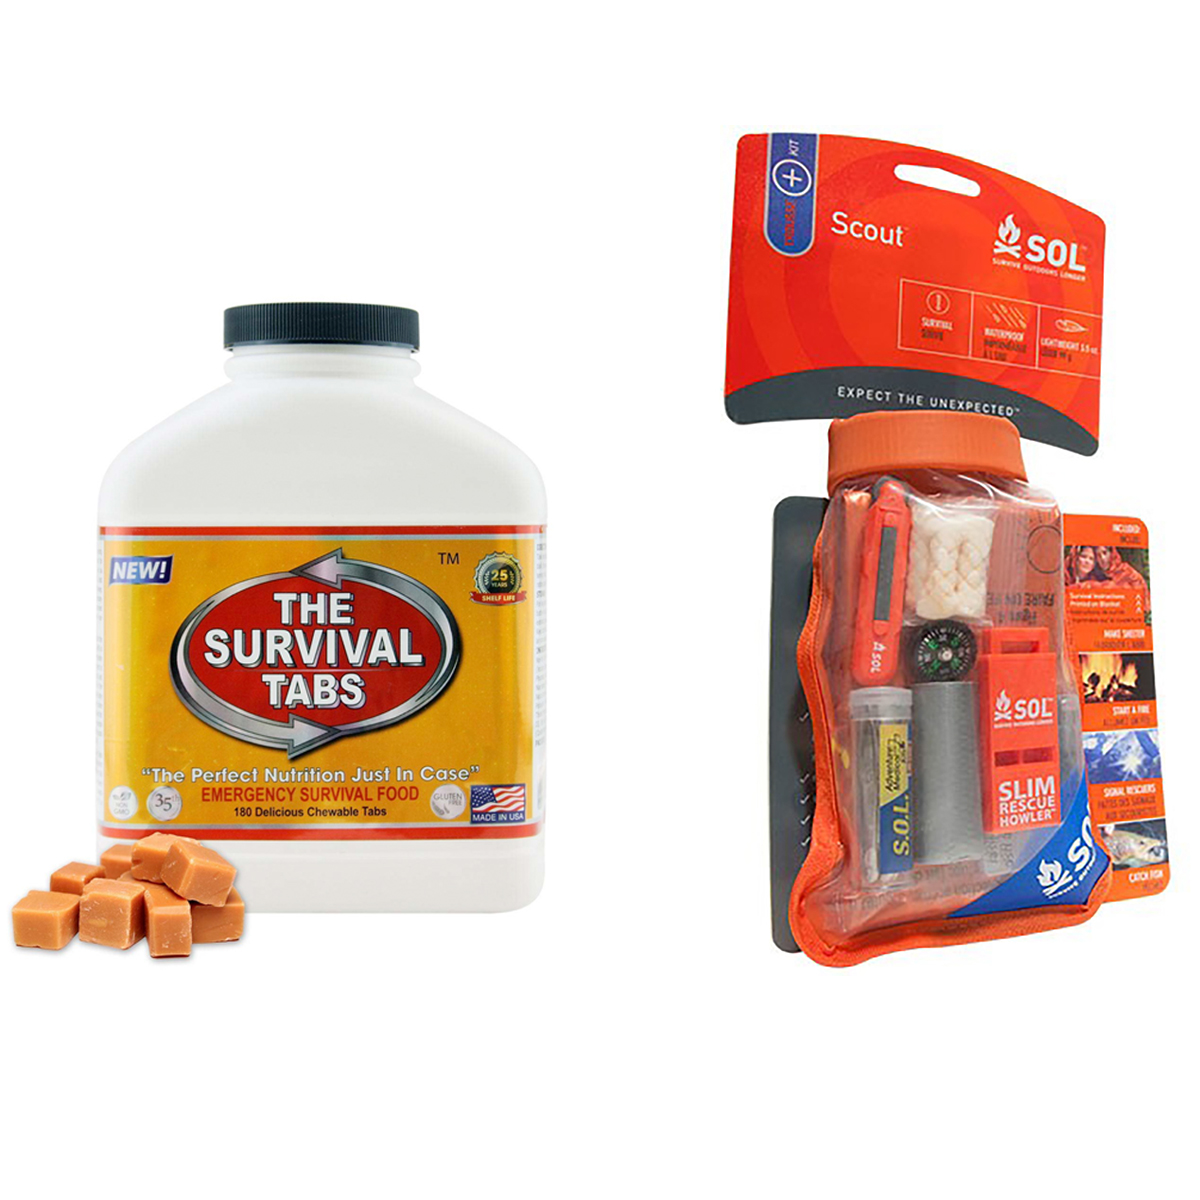 Emergency Food (180 Tabs Butterscotch) for 15 Days and Emergency Outdoor Camping Adventure Medical Scout Survival Kit by